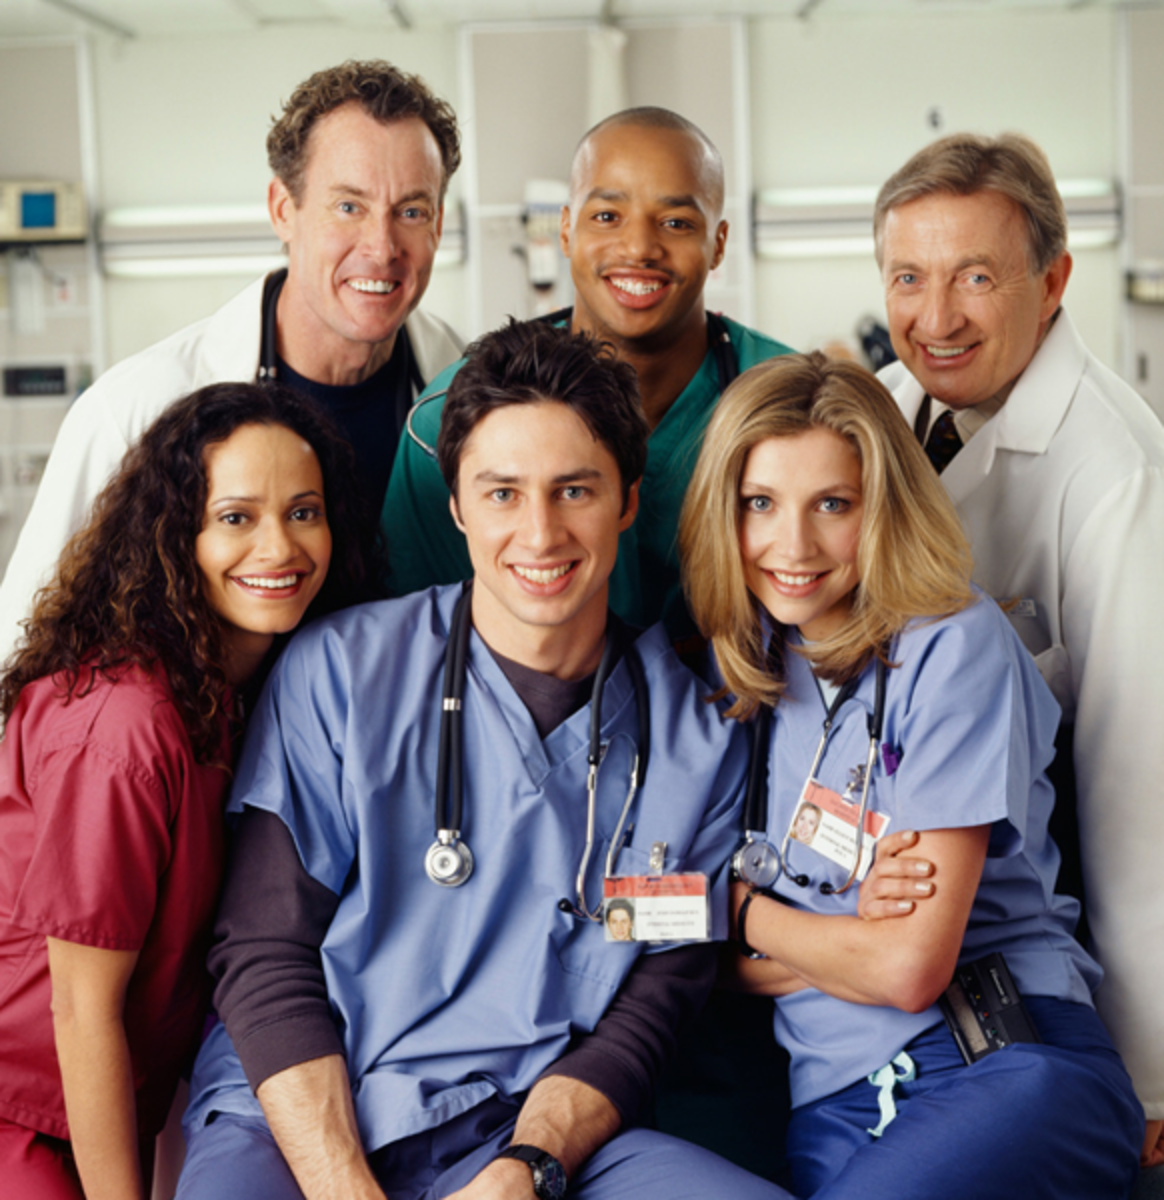 Scrubs Cast: Where Are They Now?